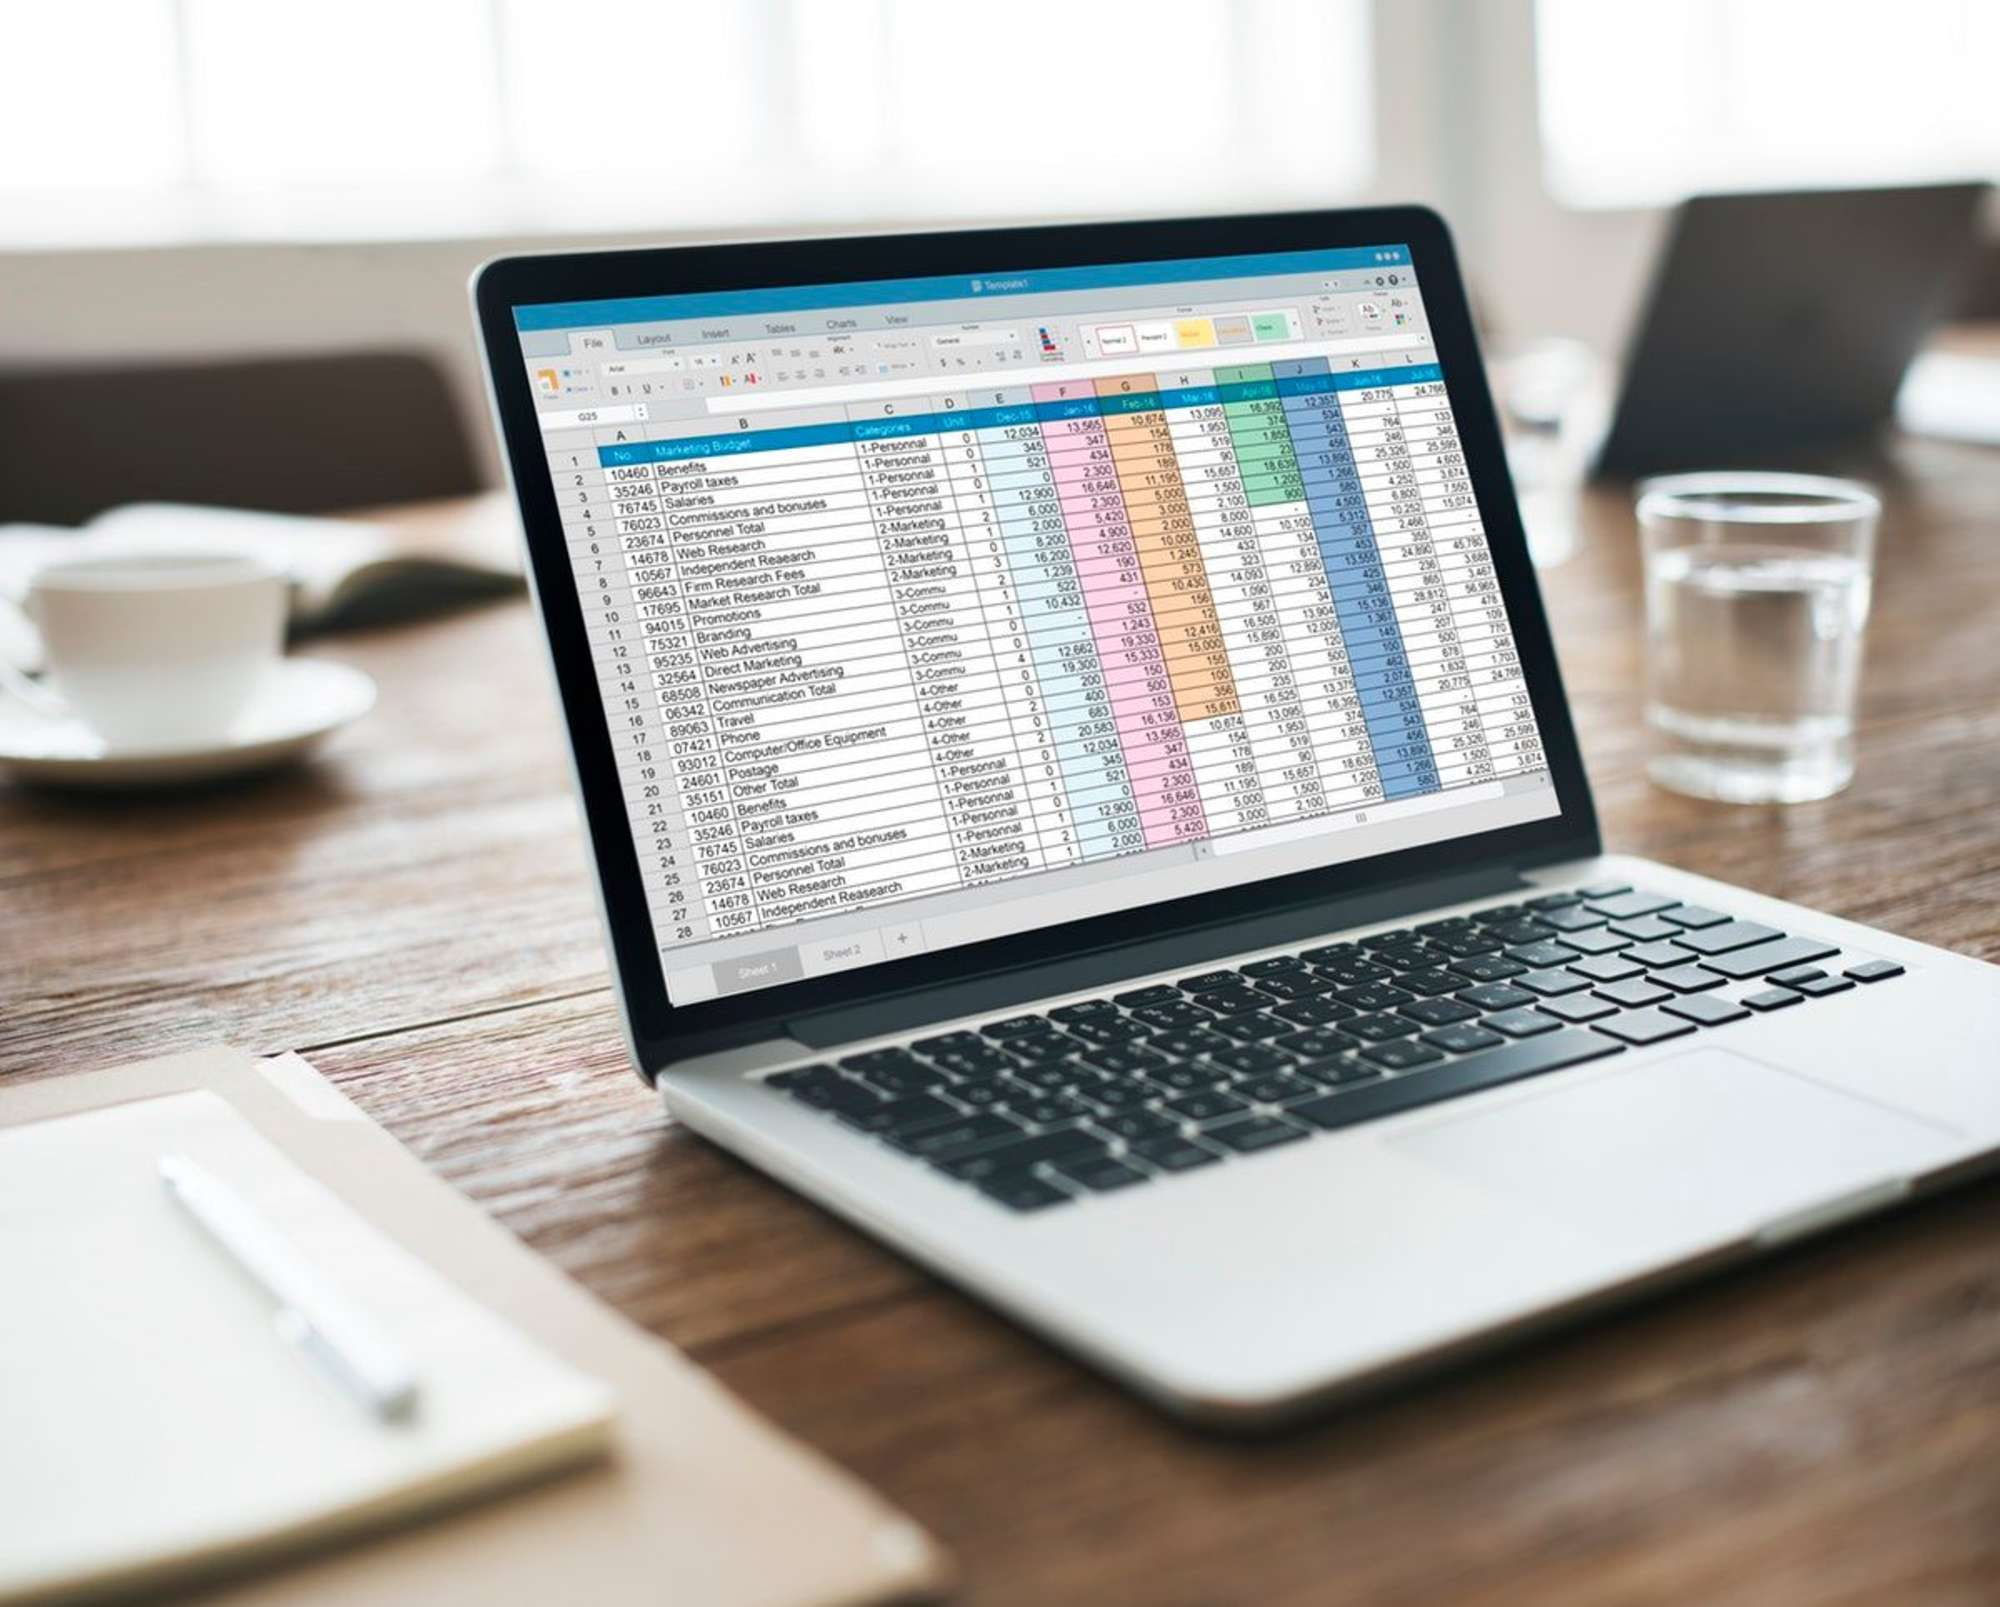 Microsoft Excel - Converting Date to ISO 8601 Format